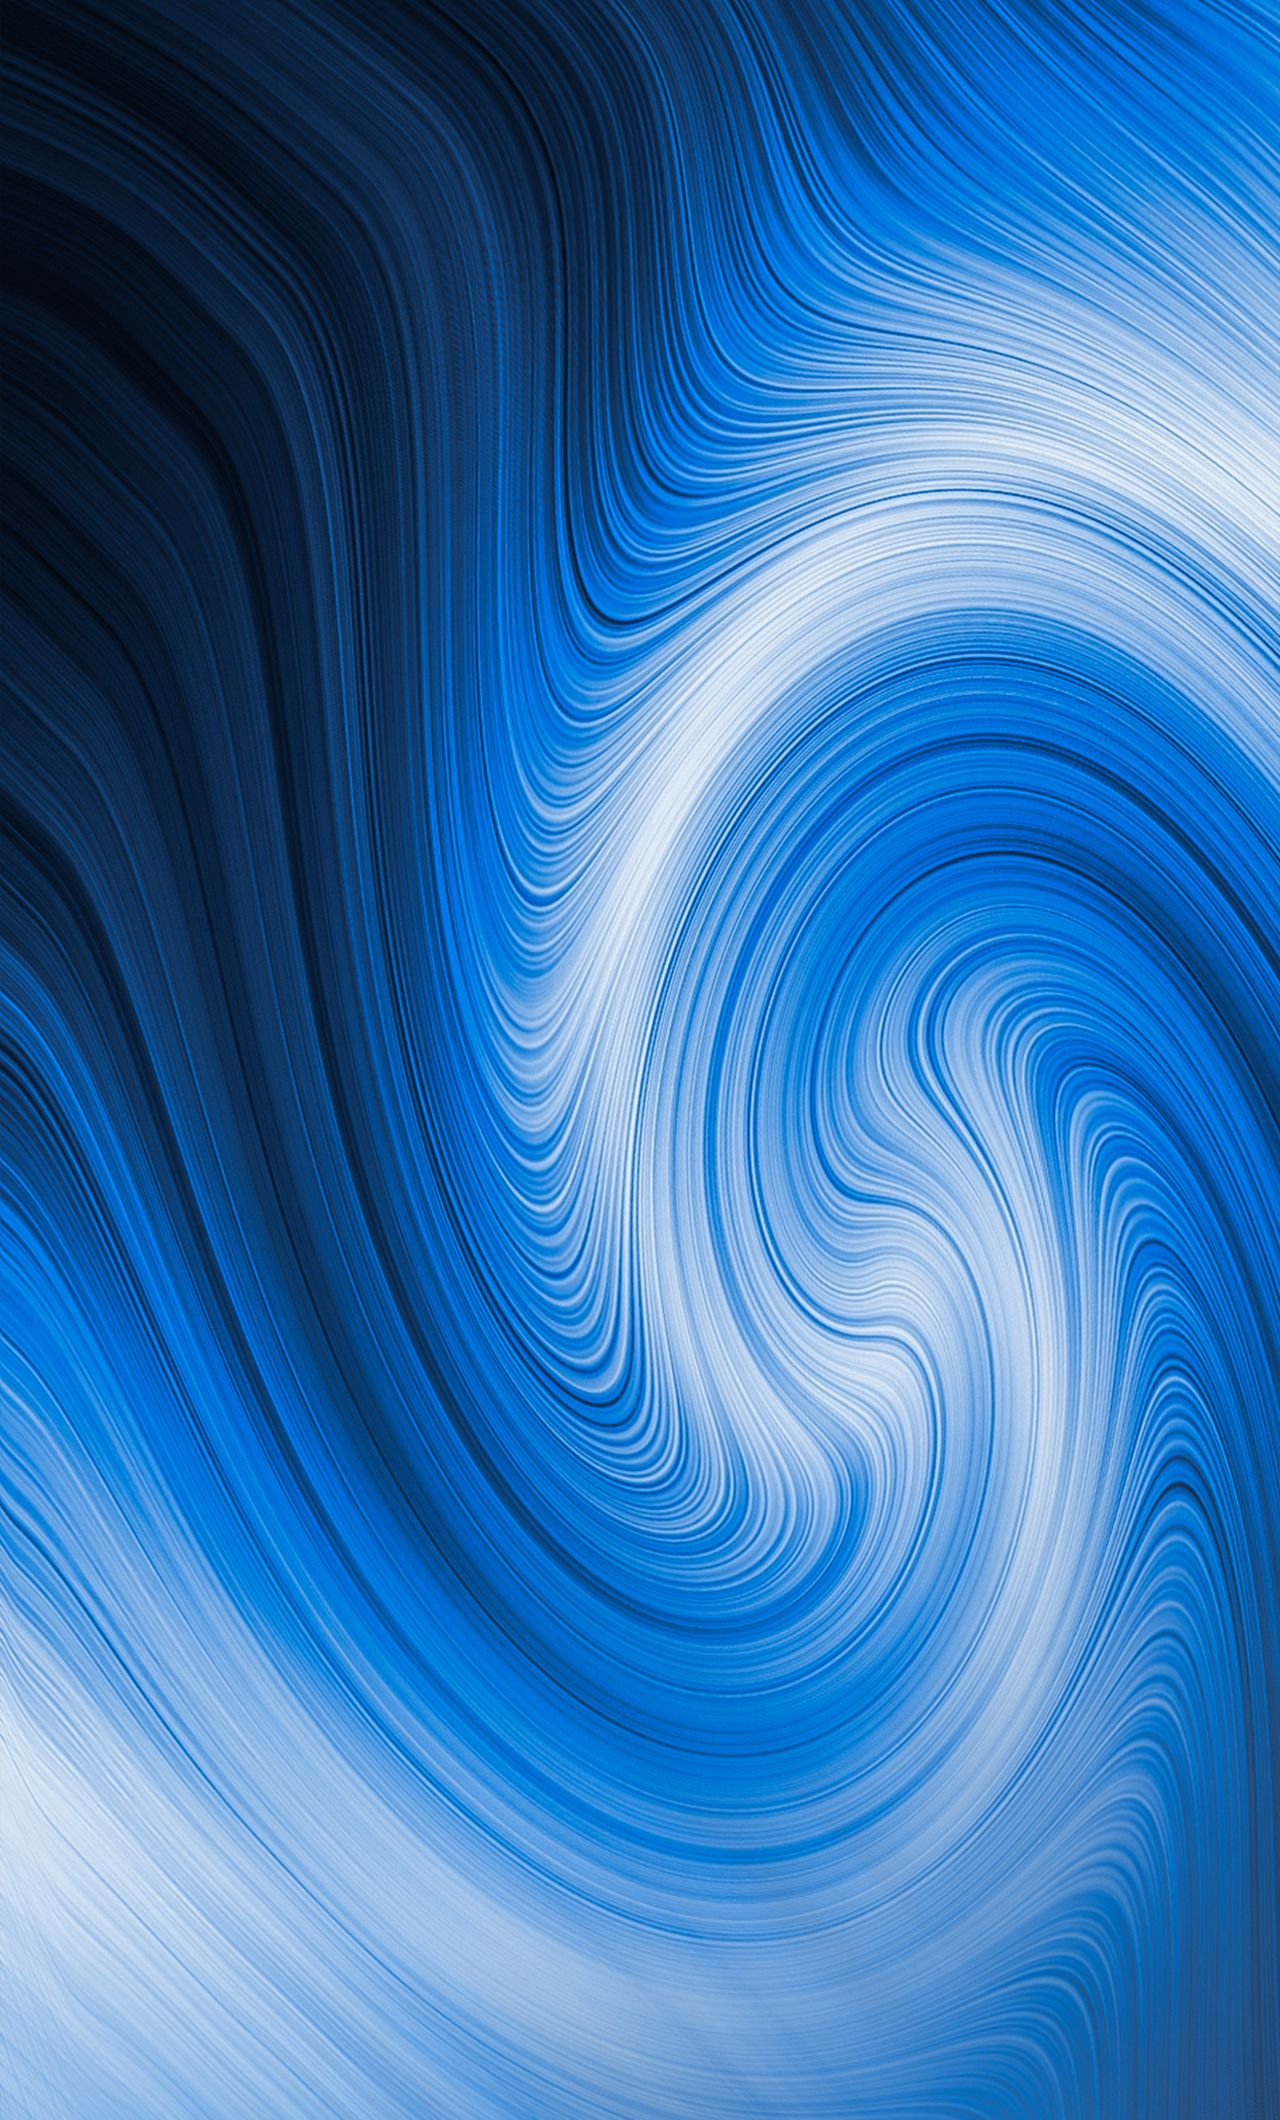 Swirls Abstract 4k Wallpapers - Wallpaper Cave